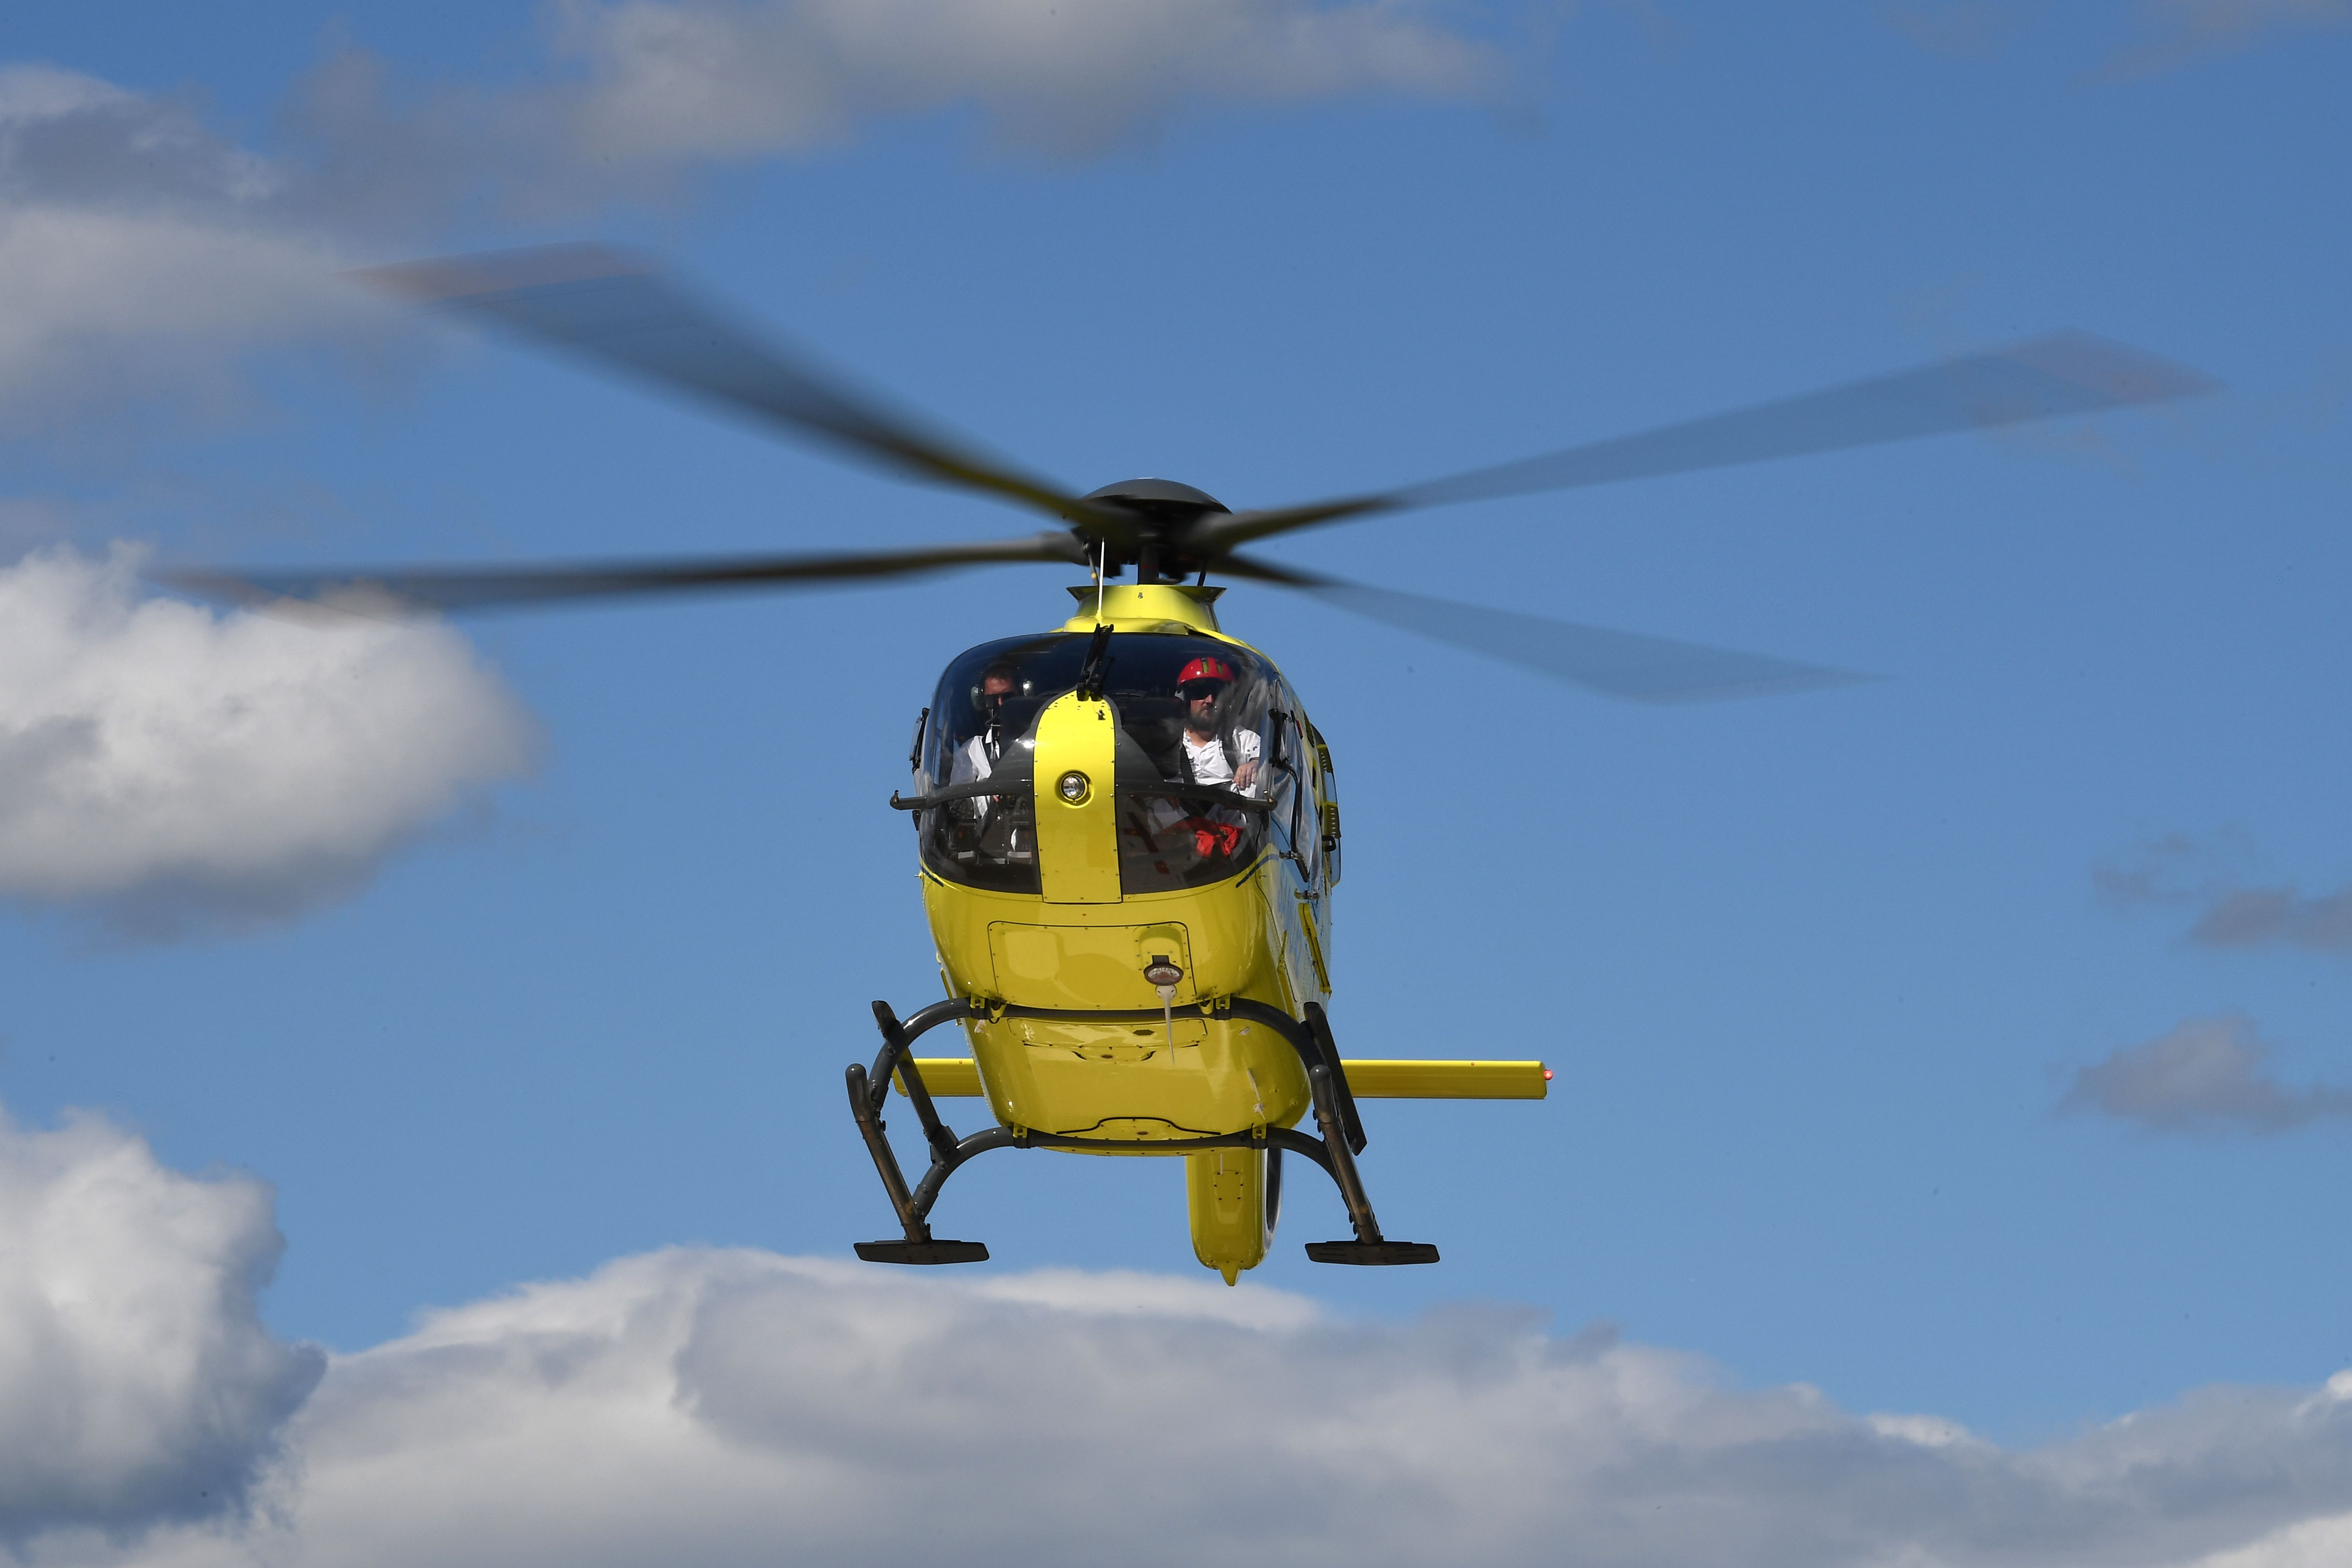 Froome had been air lifted to hospital in St Etienne